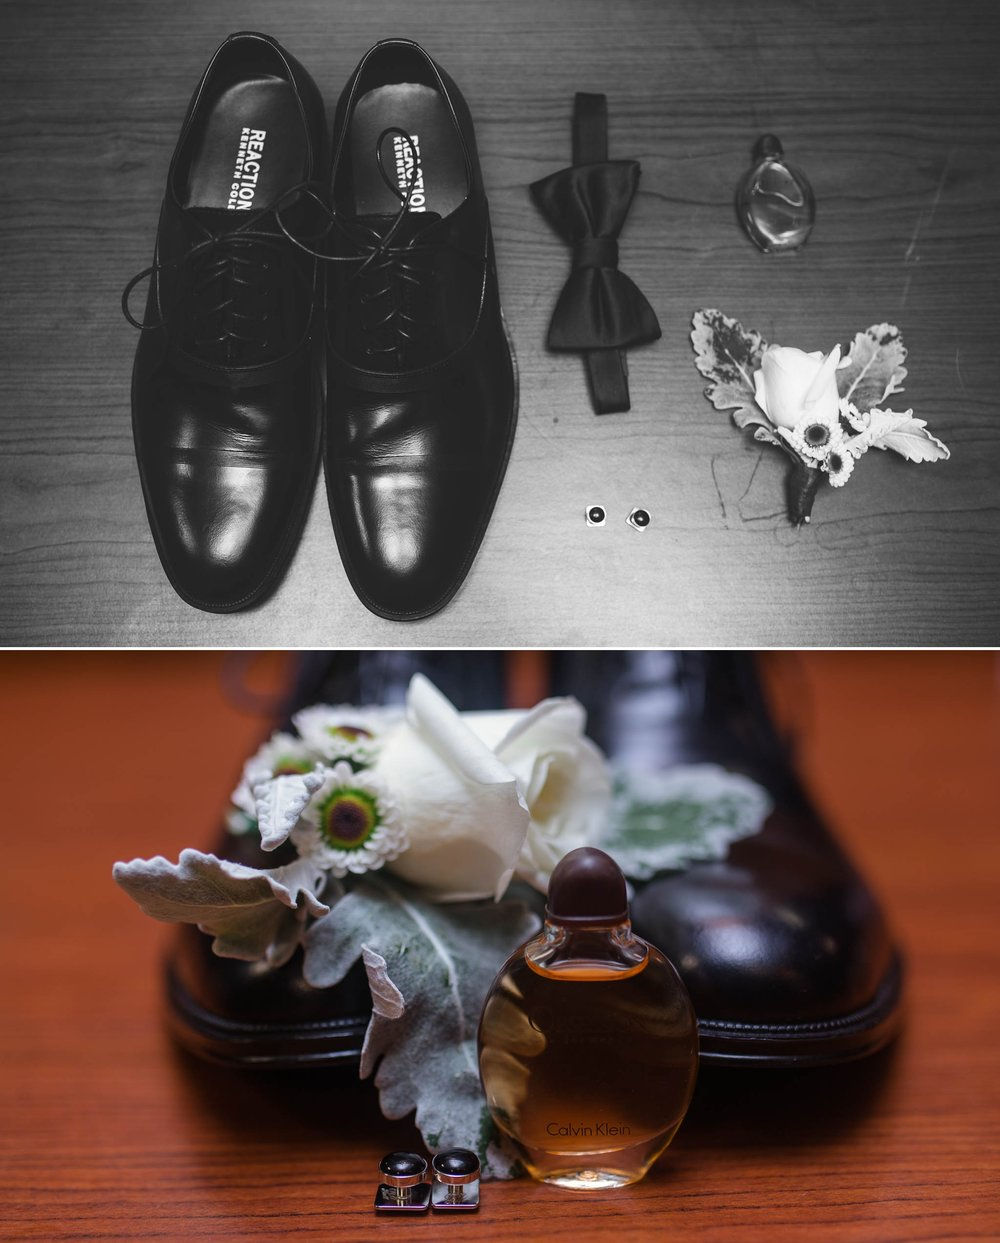 Grooms Details - Dona + Doug - MacGregor Downs Country Club in Cary, NC - Raleigh Wedding Photographer